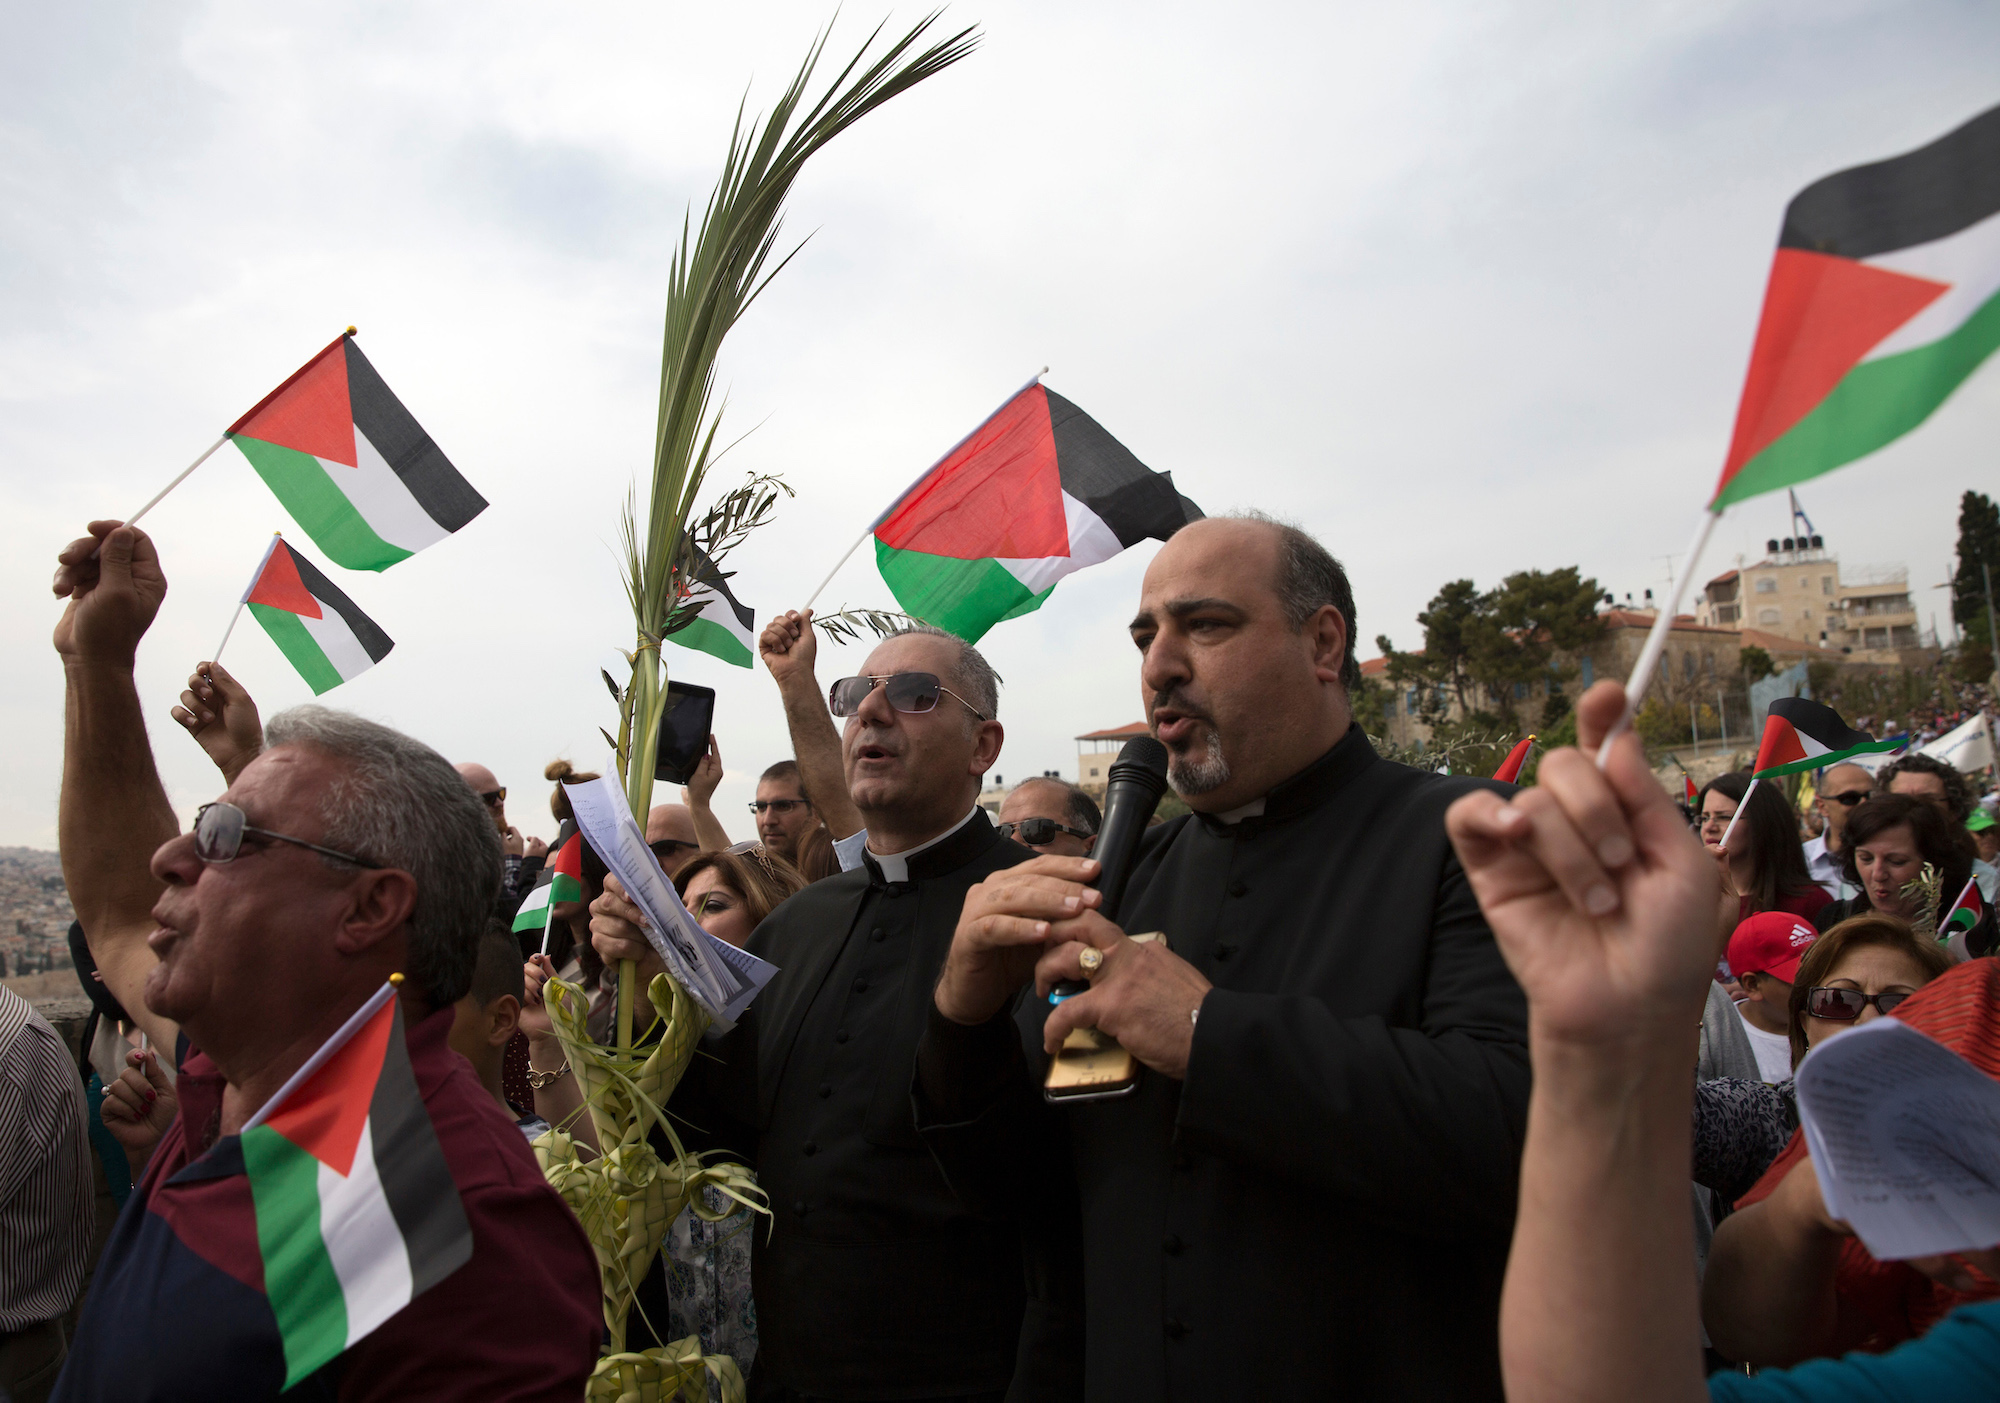 Palestinian Christian Pilgrims celebrate during a Palm Sunday procession on the Mt. of Olives on April 9, 2017. (Photo by Heidi Levine/Sipa Press).